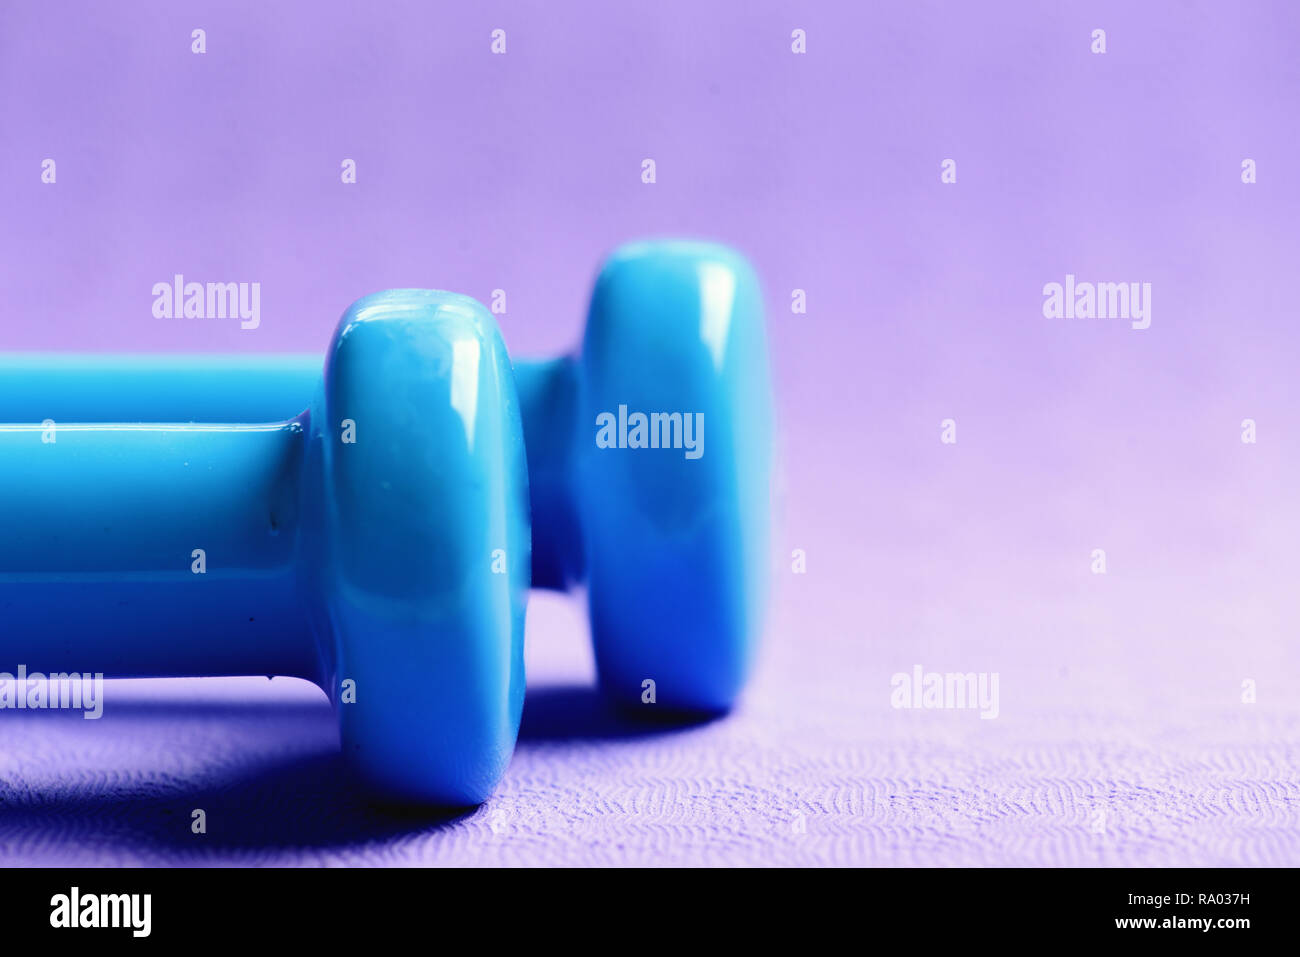 Sports and healthy lifestyle concept. Barbells made of plastic, close up. Shaping and fitness equipment. Dumbbells in cyan blue color on purple background, selective focus - Stock Image